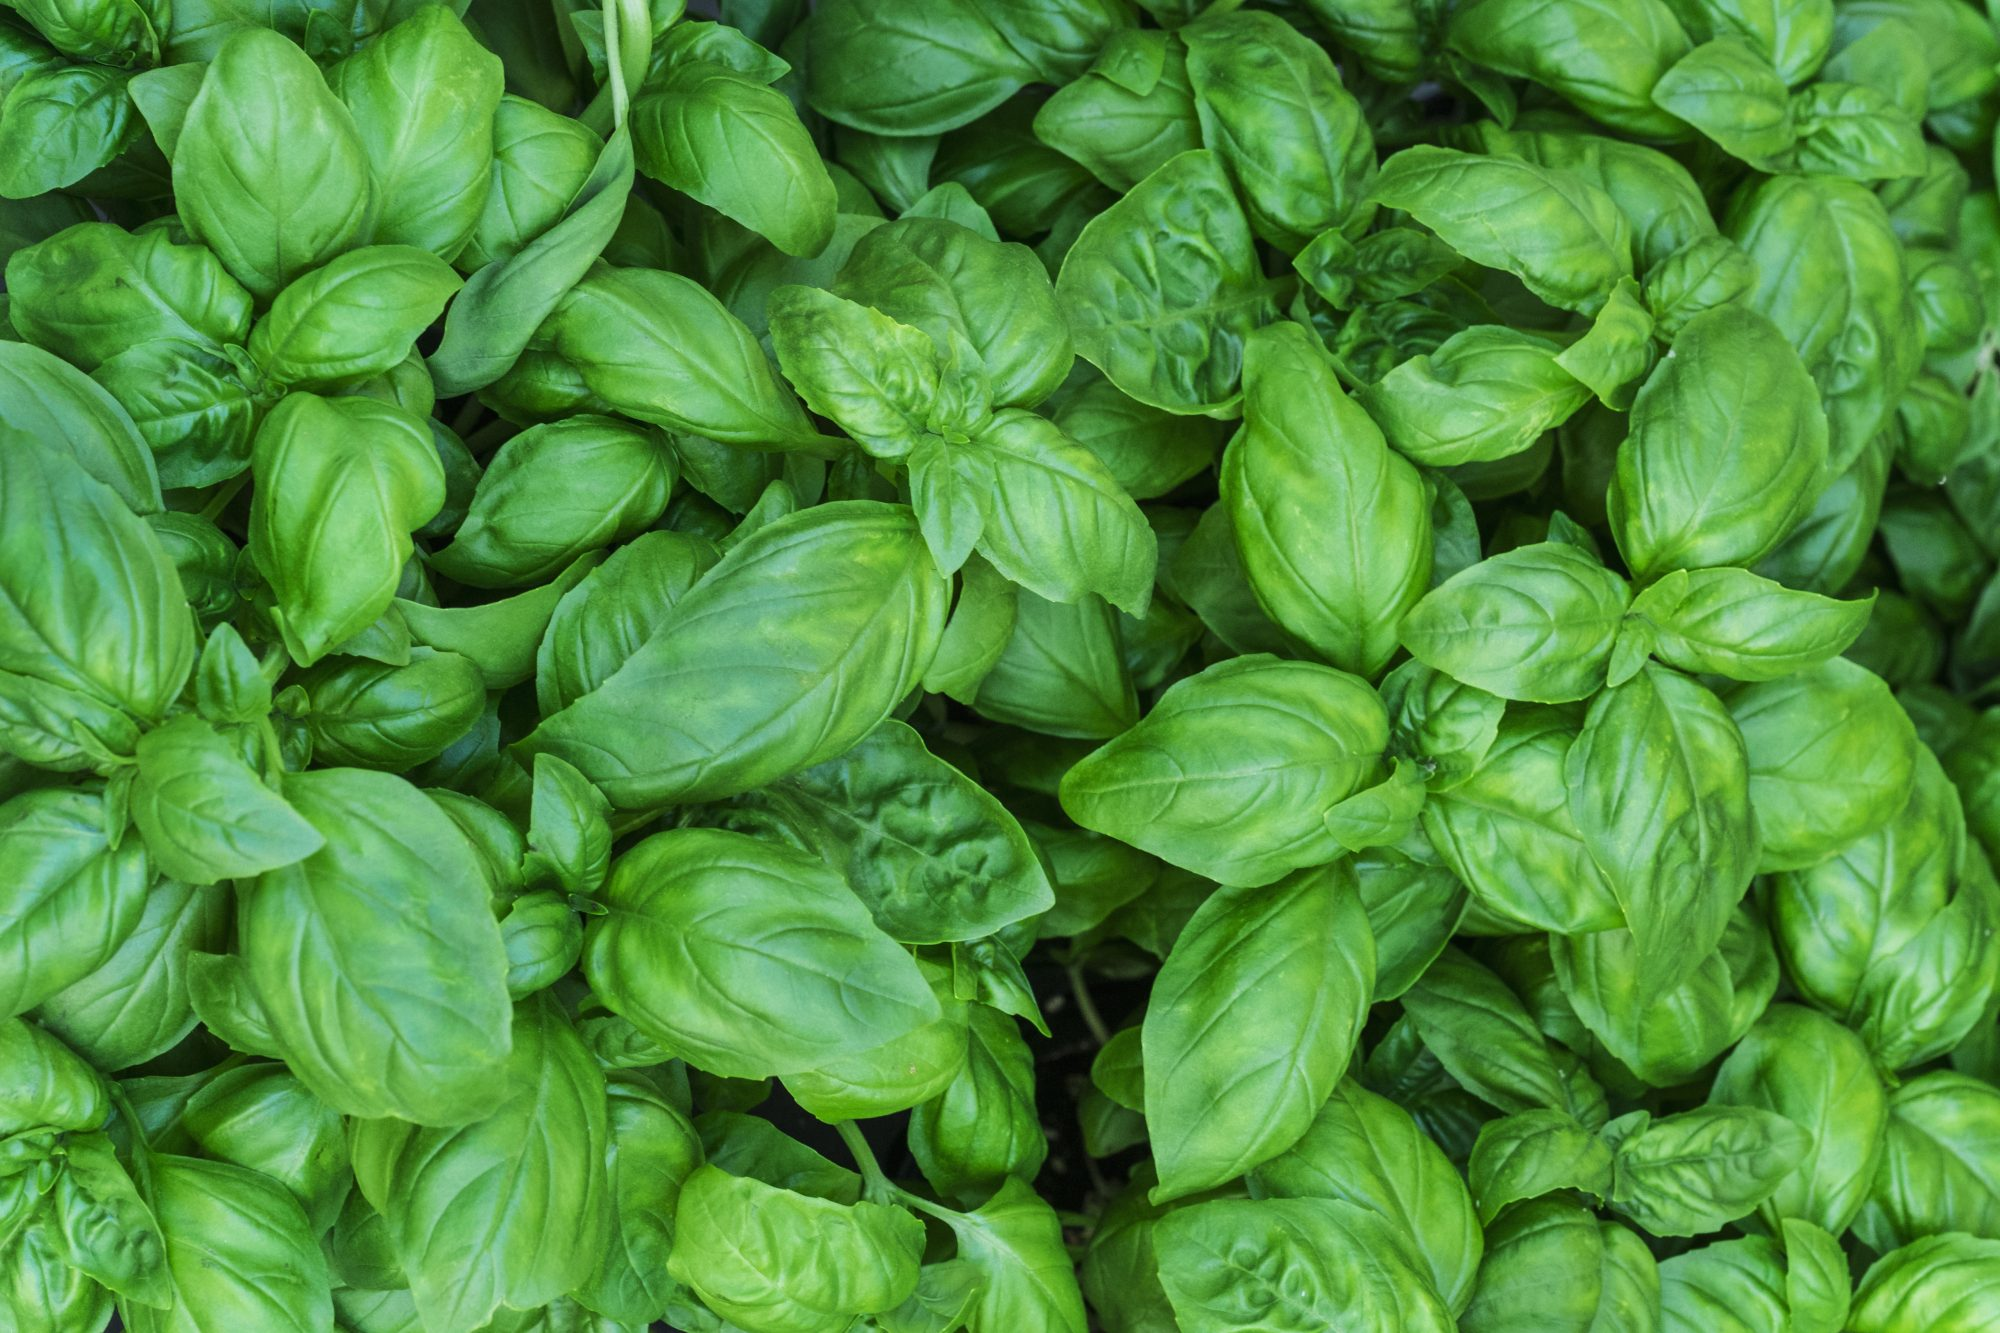 083120_Getty Basil Image